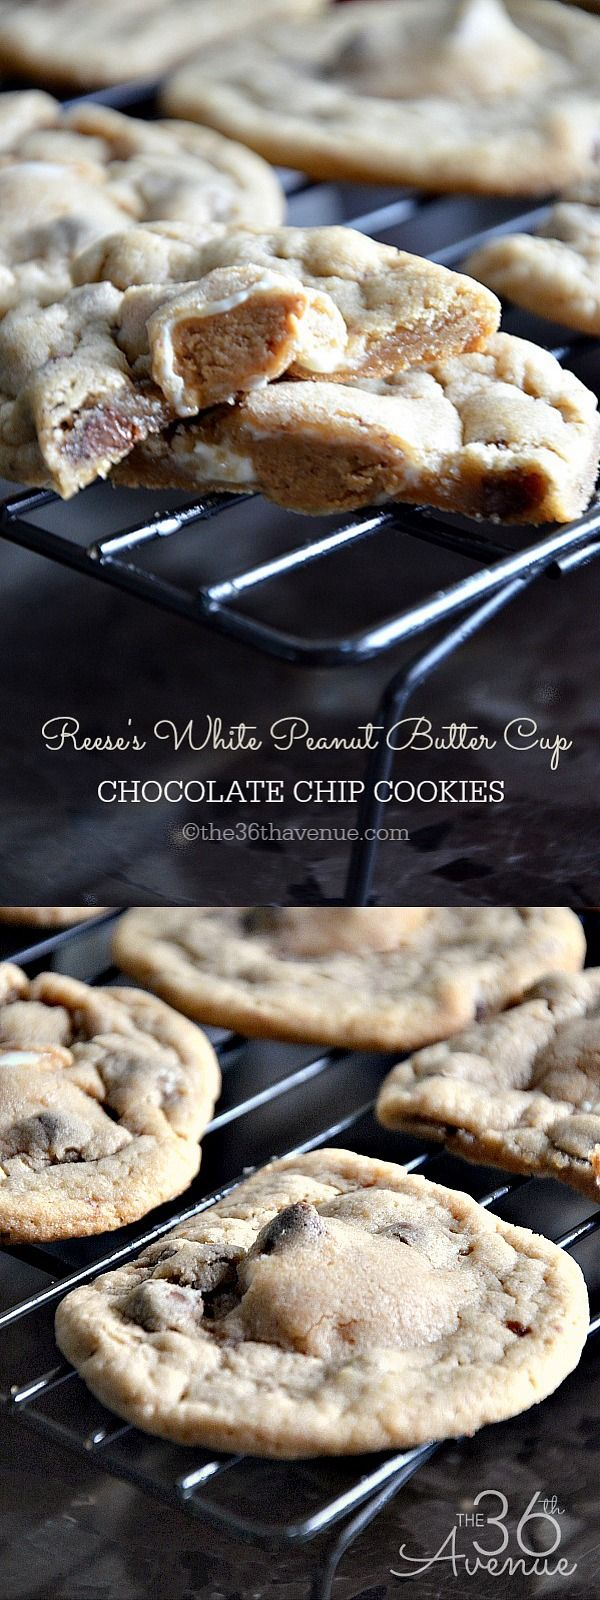 Reese's Peanut Butter Cup Chocolate Chip Cookie Recipe. Pin it NOW and bake them later! the36thavenue.com